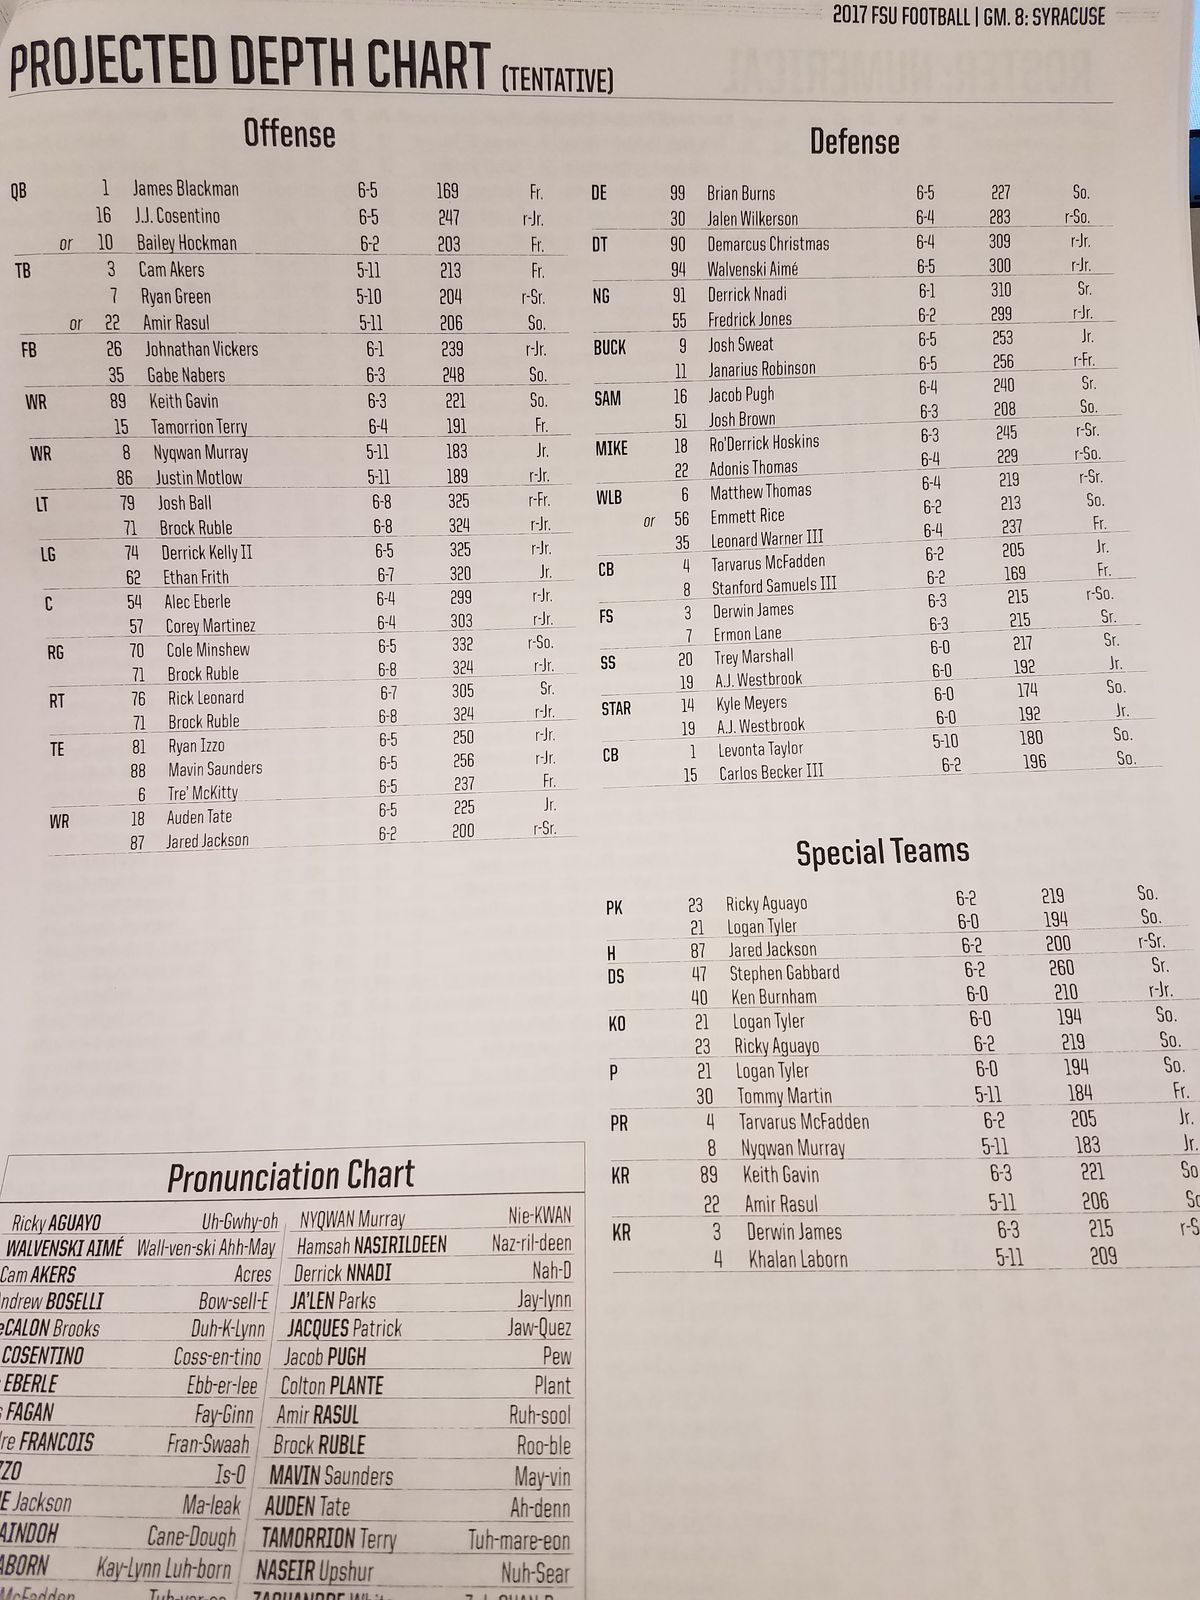 There Are No Changes To The Defensive Depth From Last Week When Fsu Allowed 35 Points Bc